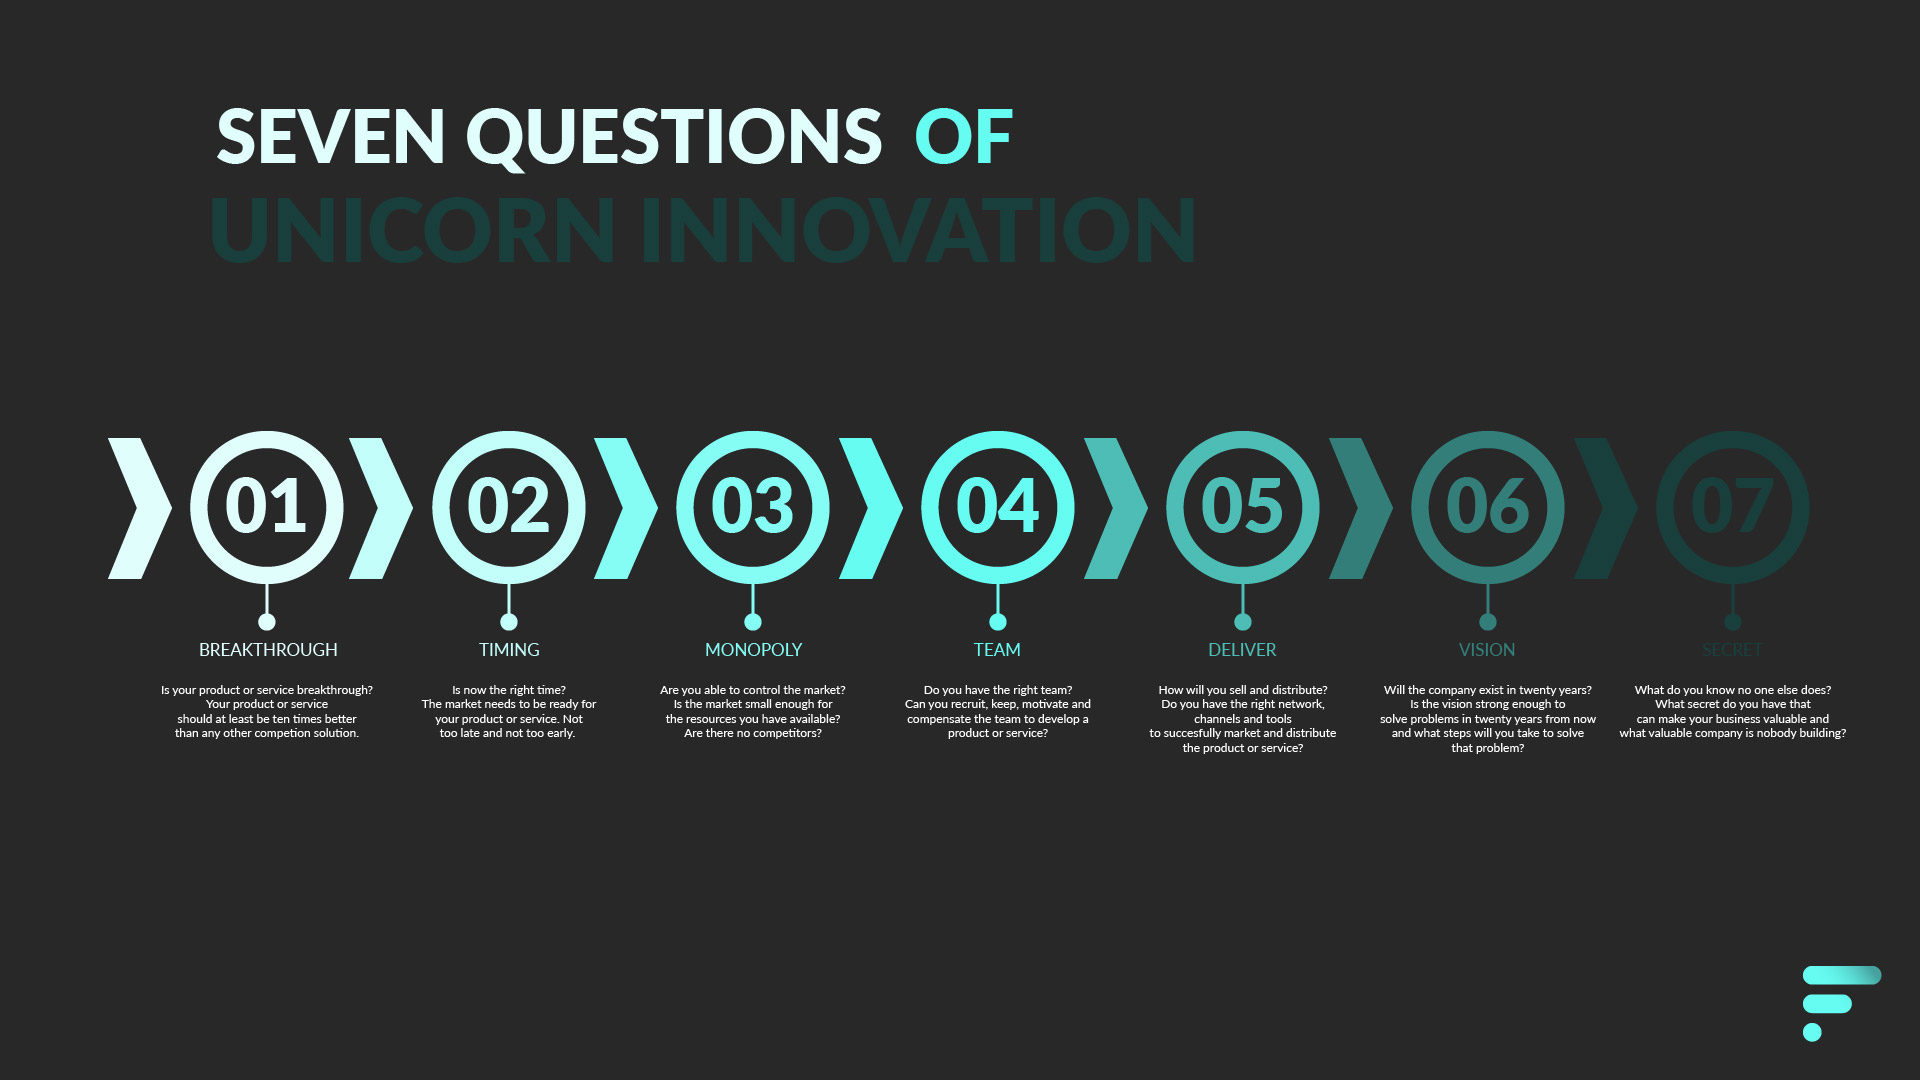 Unicorn questions - Peter Thiel - Fabian Post - Business Development - Amsterdam